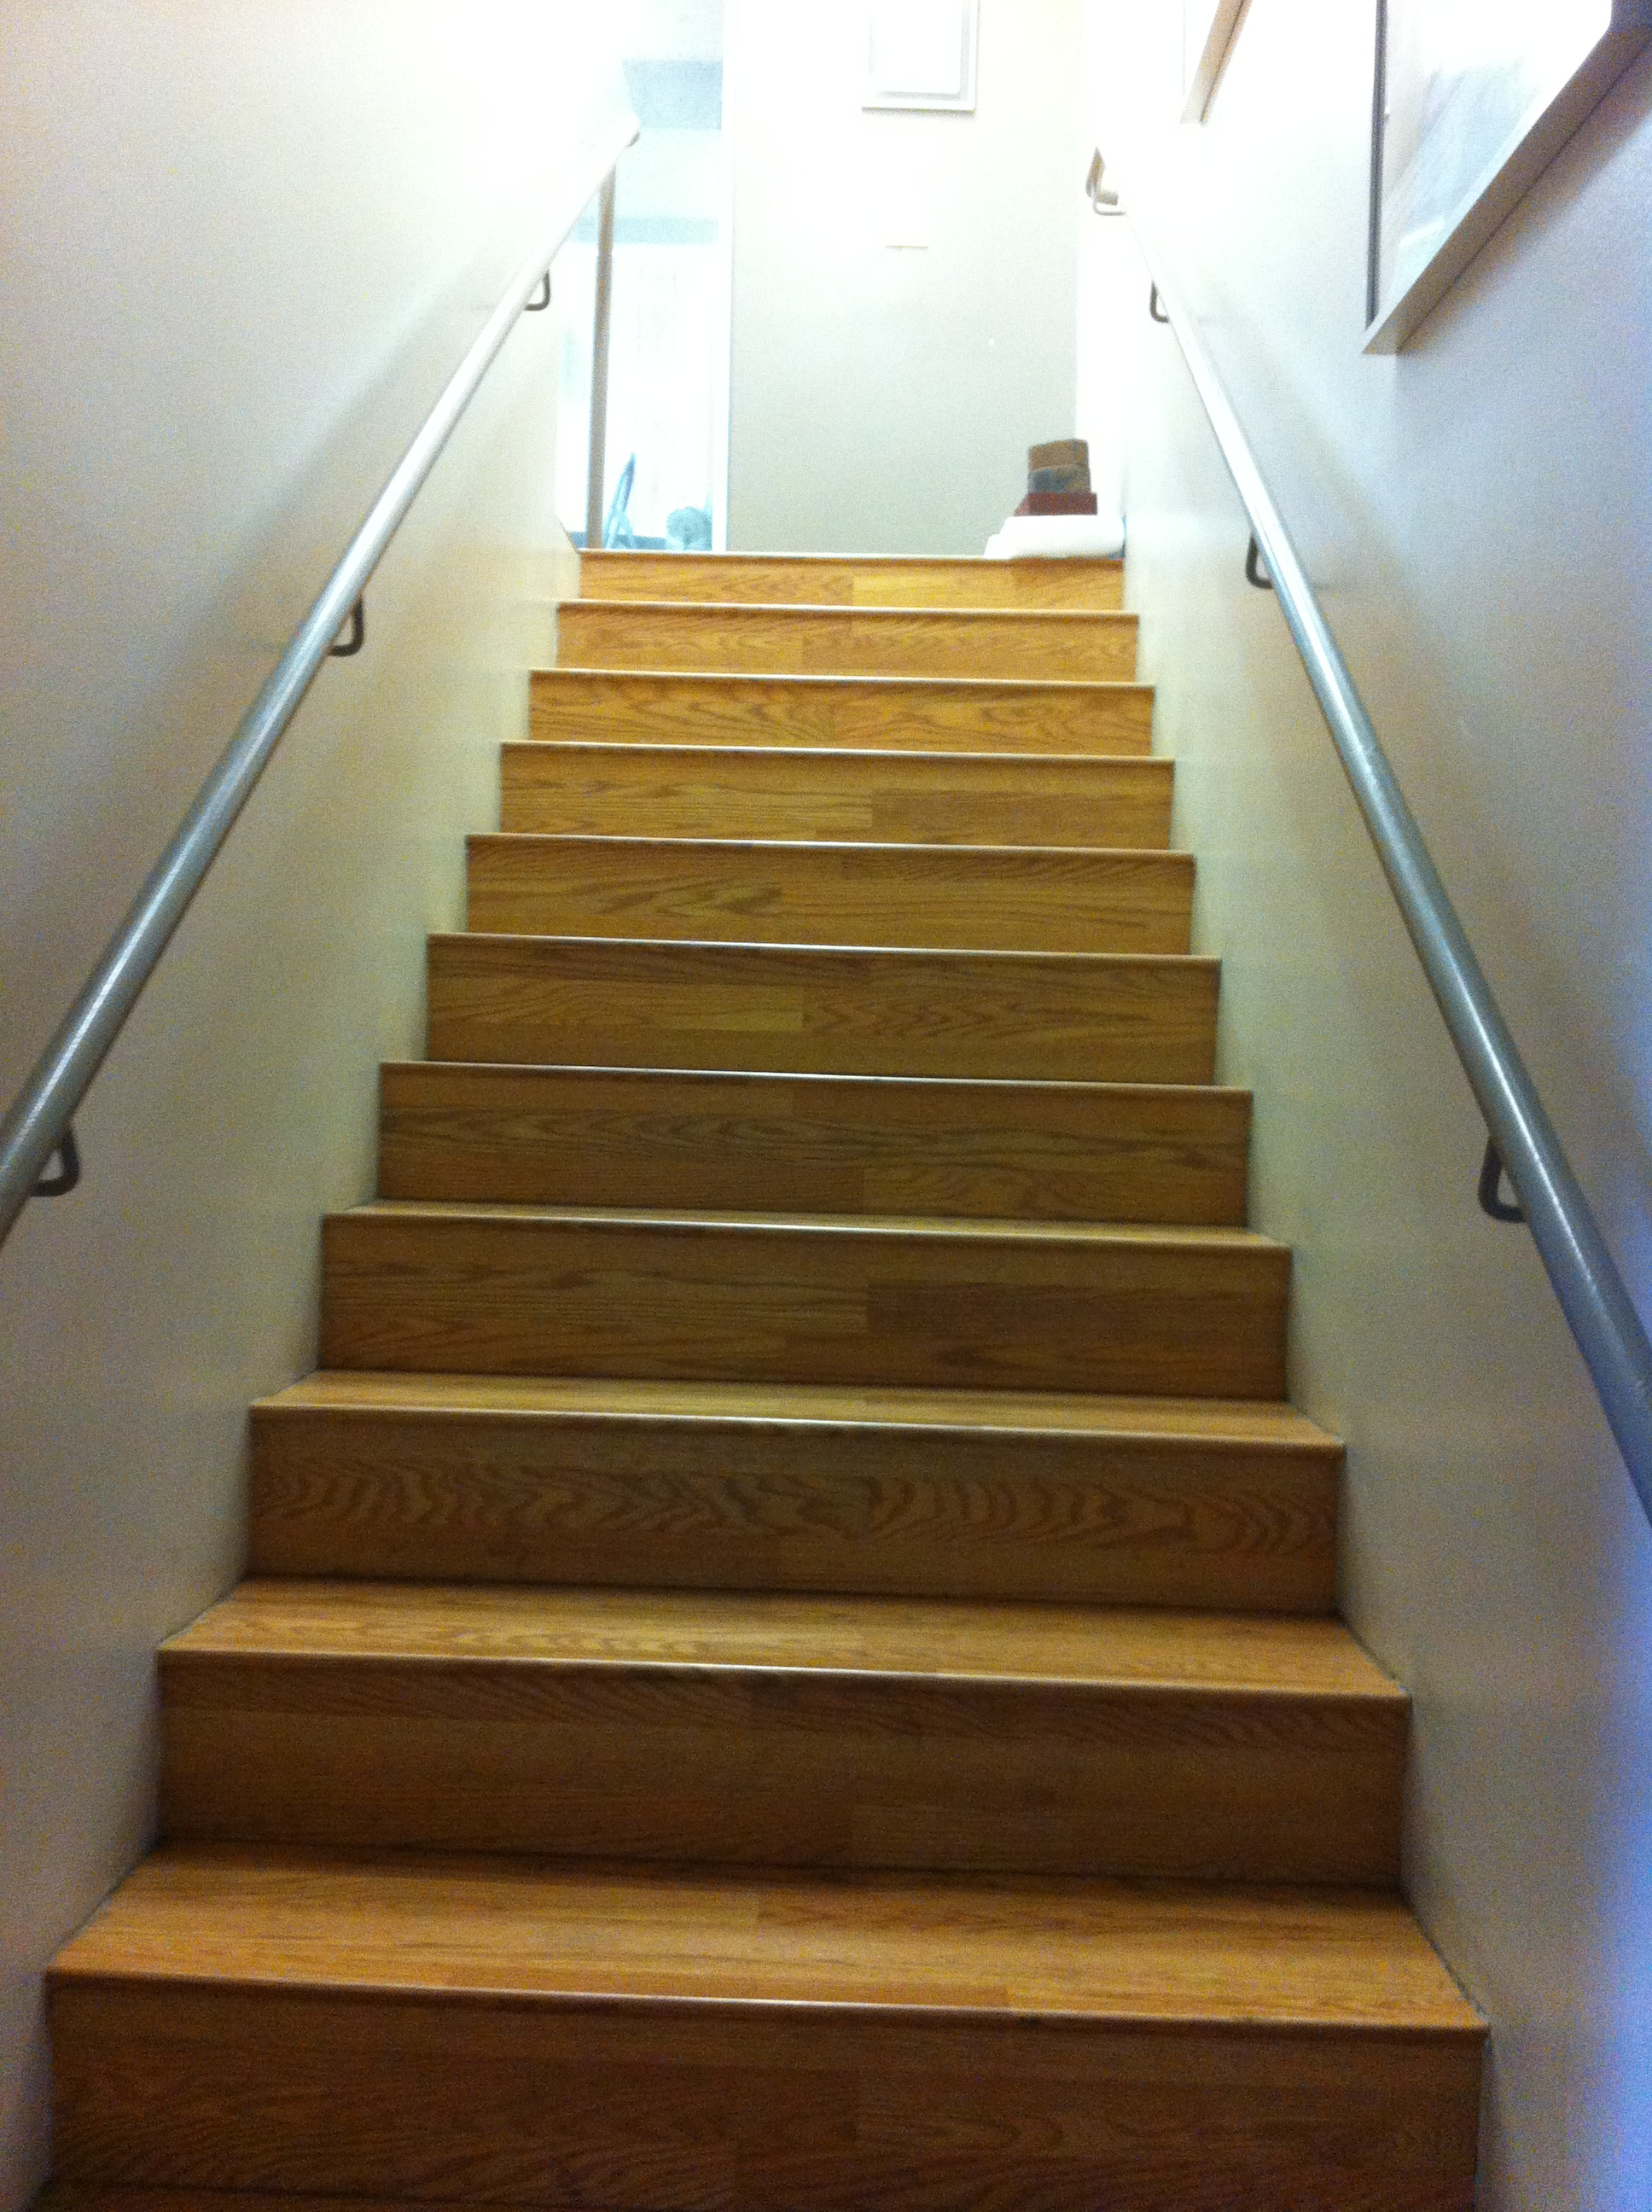 Stairs leading up to office - Private Entrance